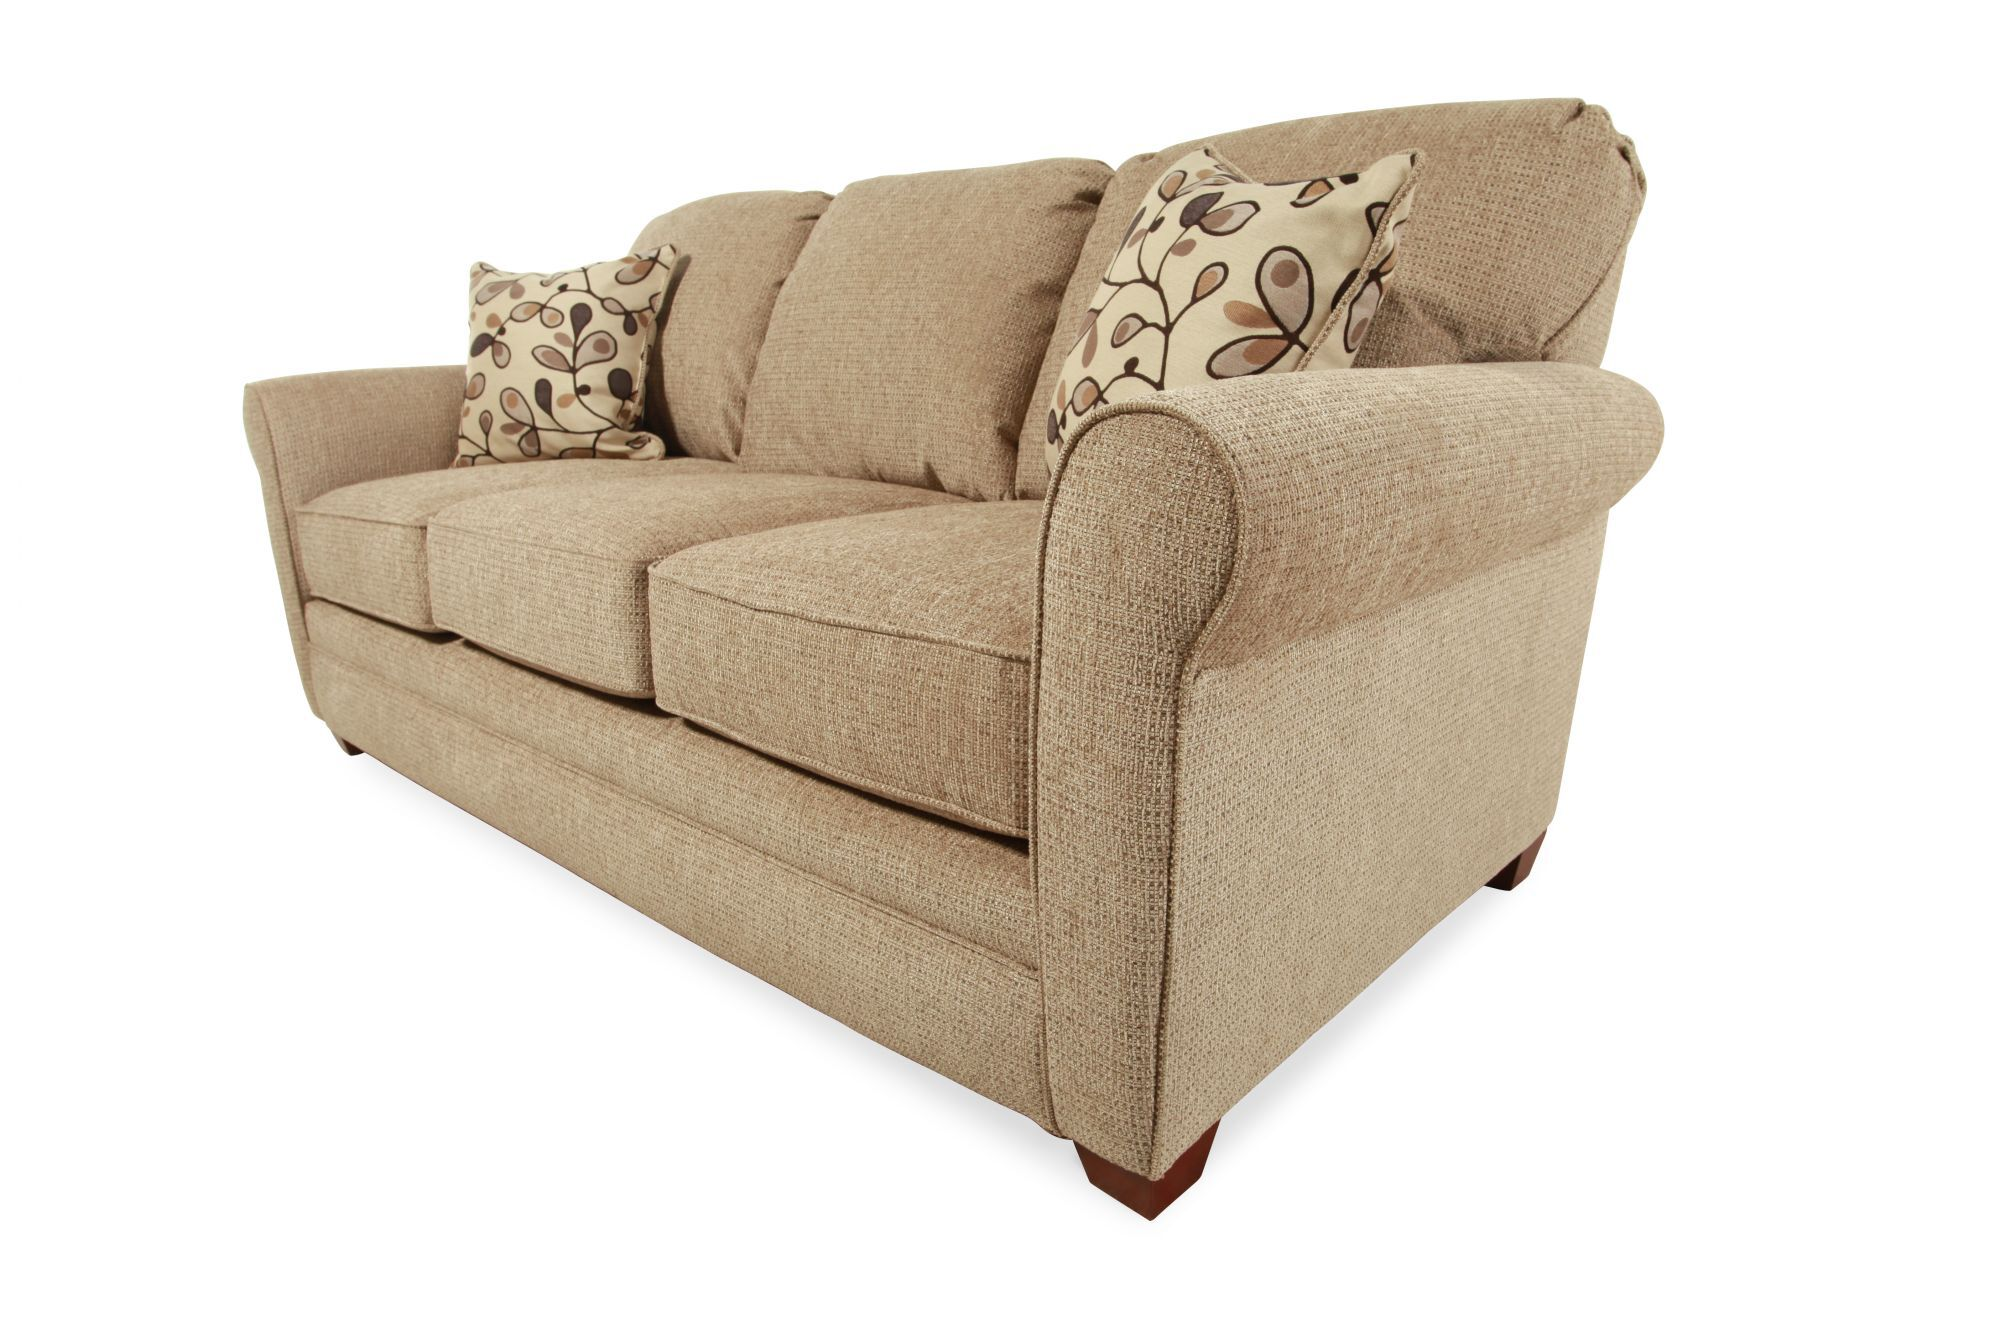 lane sleeper sofa queen next toulouse leather reviews sunburst linen i rest mathis brothers